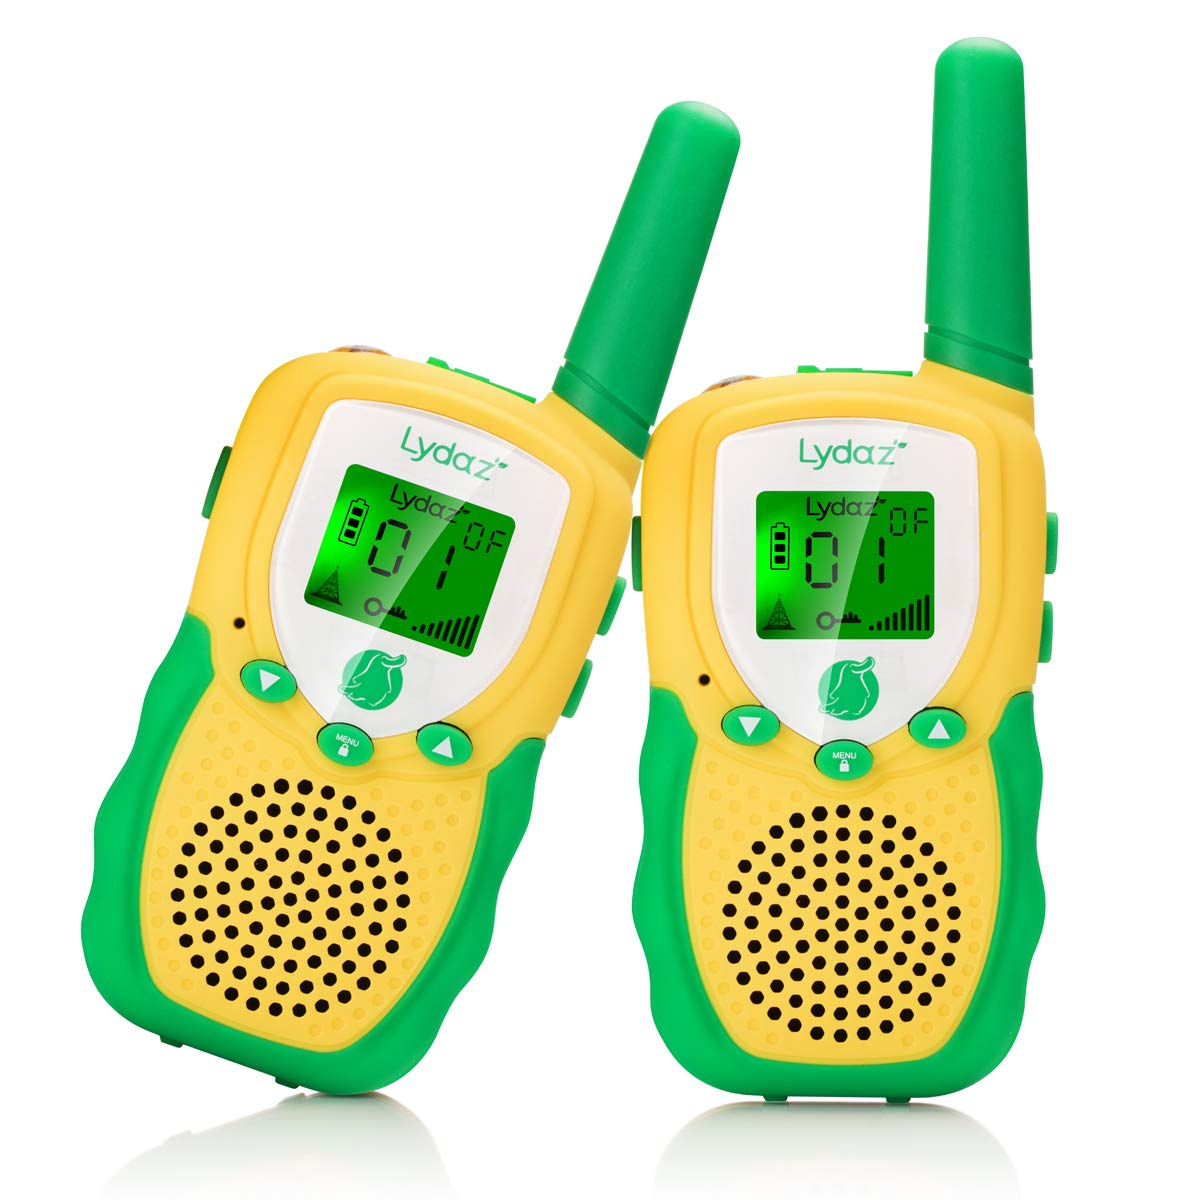 Walkie Talkies for Kids, 22 Channels 2 Way Radios 3 Miles Range Long Distance with 2 Inch Backlit LCD Flashlight - Best Gifts Toys for Kids Boys Girls Age 3 4 5 6 7 8 9 10 Outdoor Adventures Camping